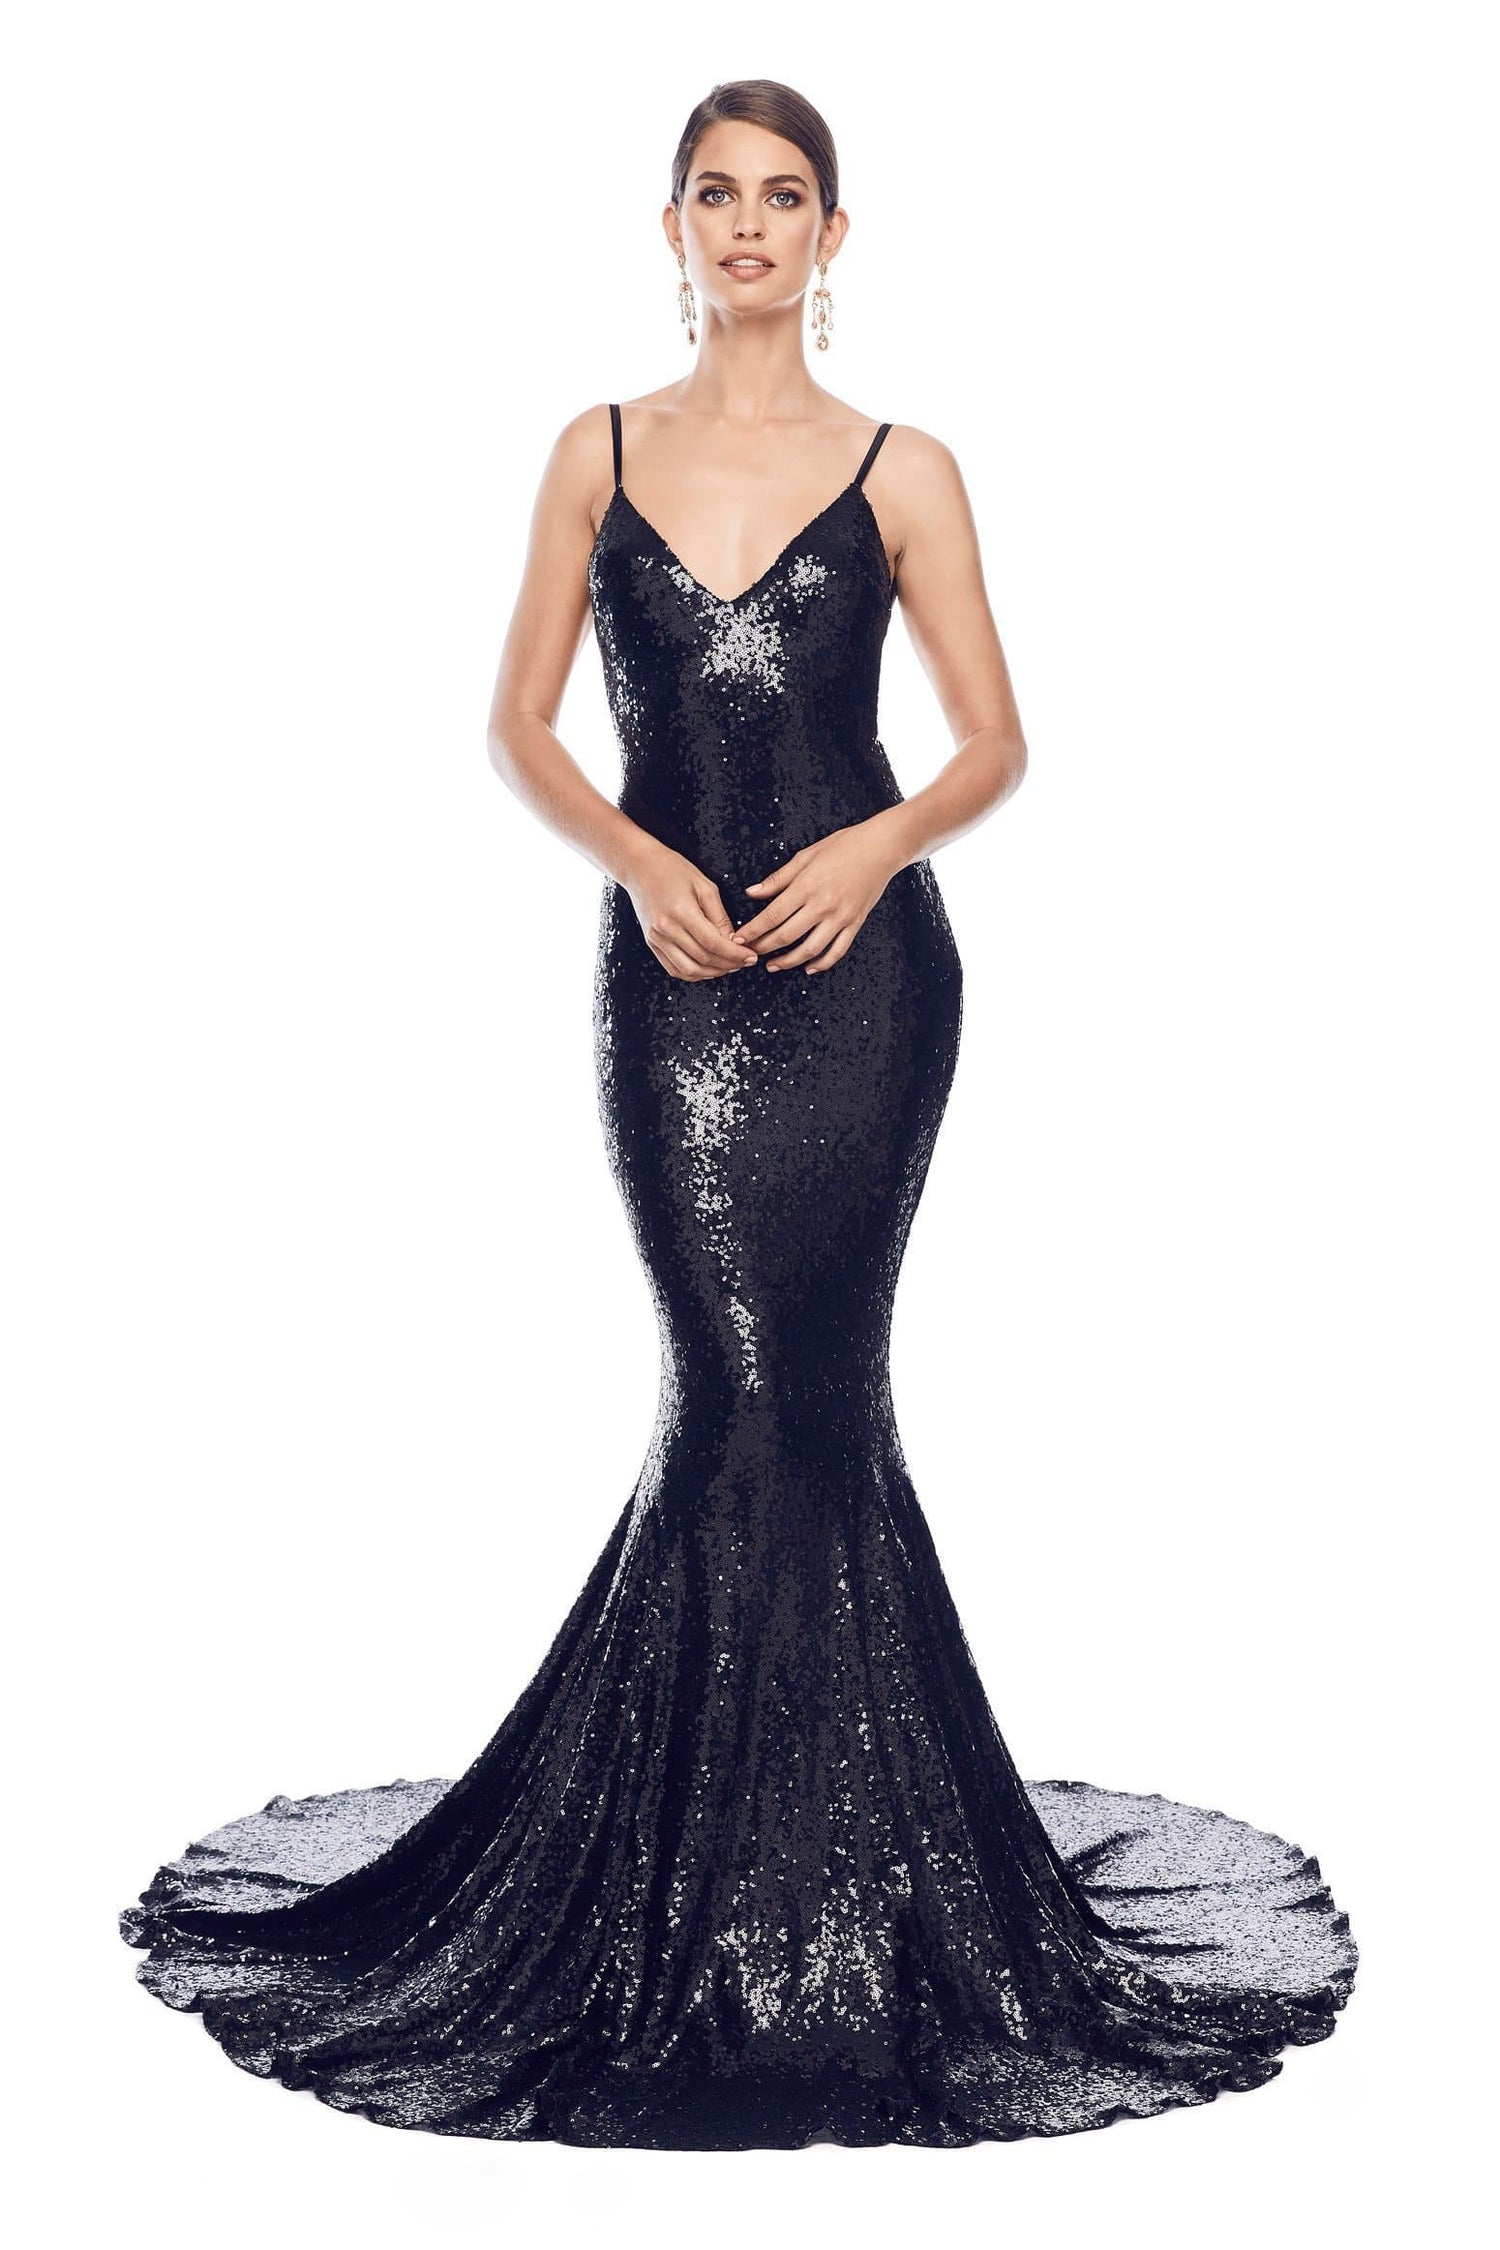 Yassmine Luxe - Black Sequin Backless Gown with V-Neckline